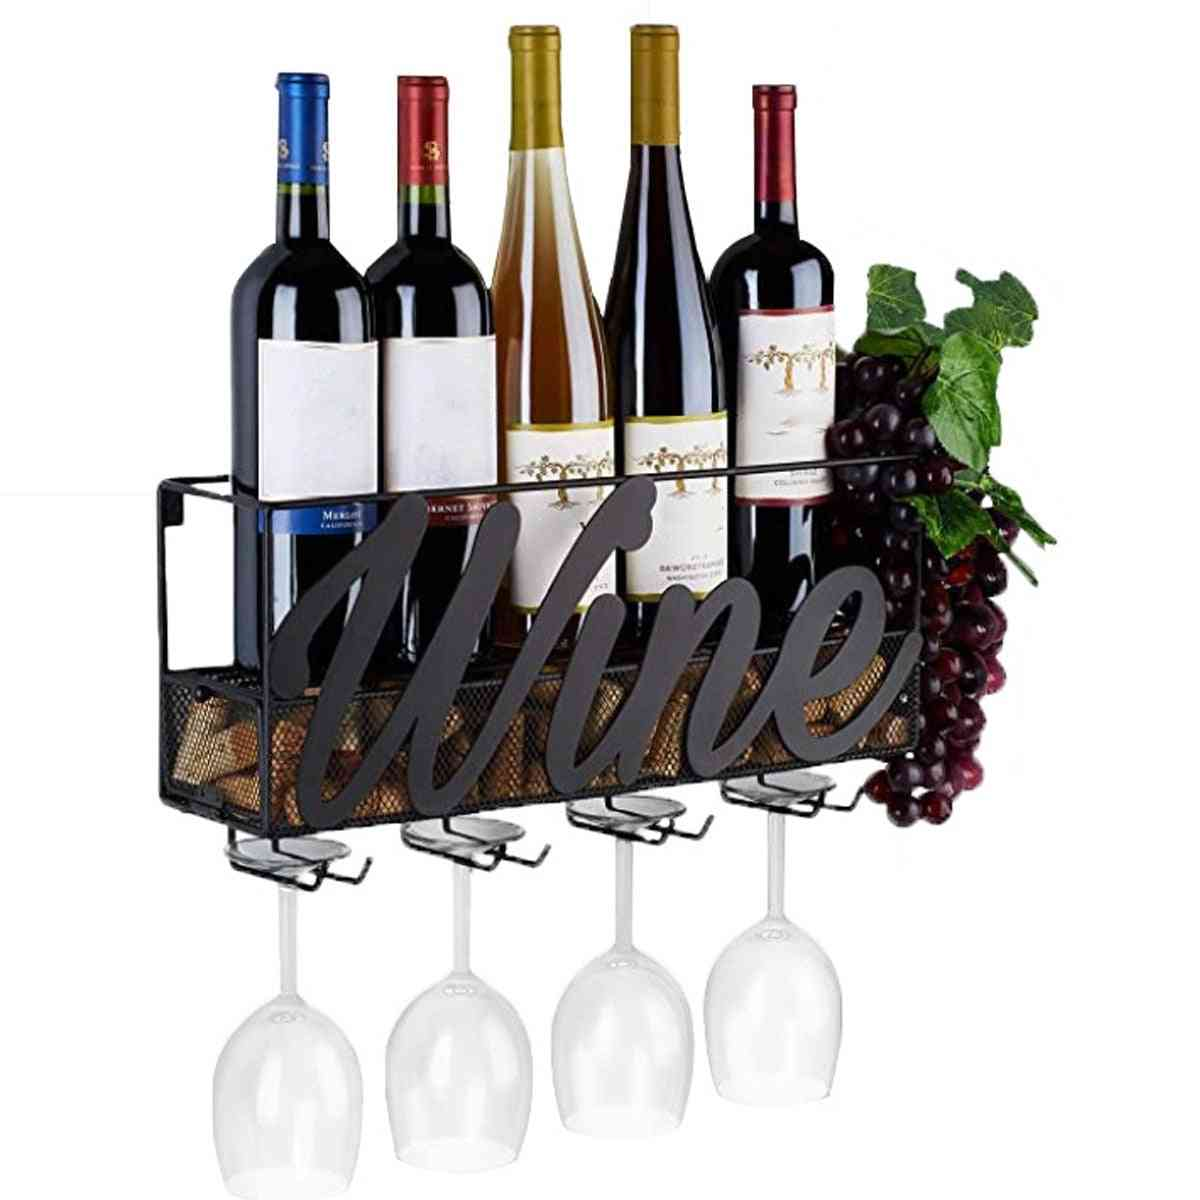 Rack Bottle Shelf With 4 Built-in Wine Glass Holders And Extra Cork Tray